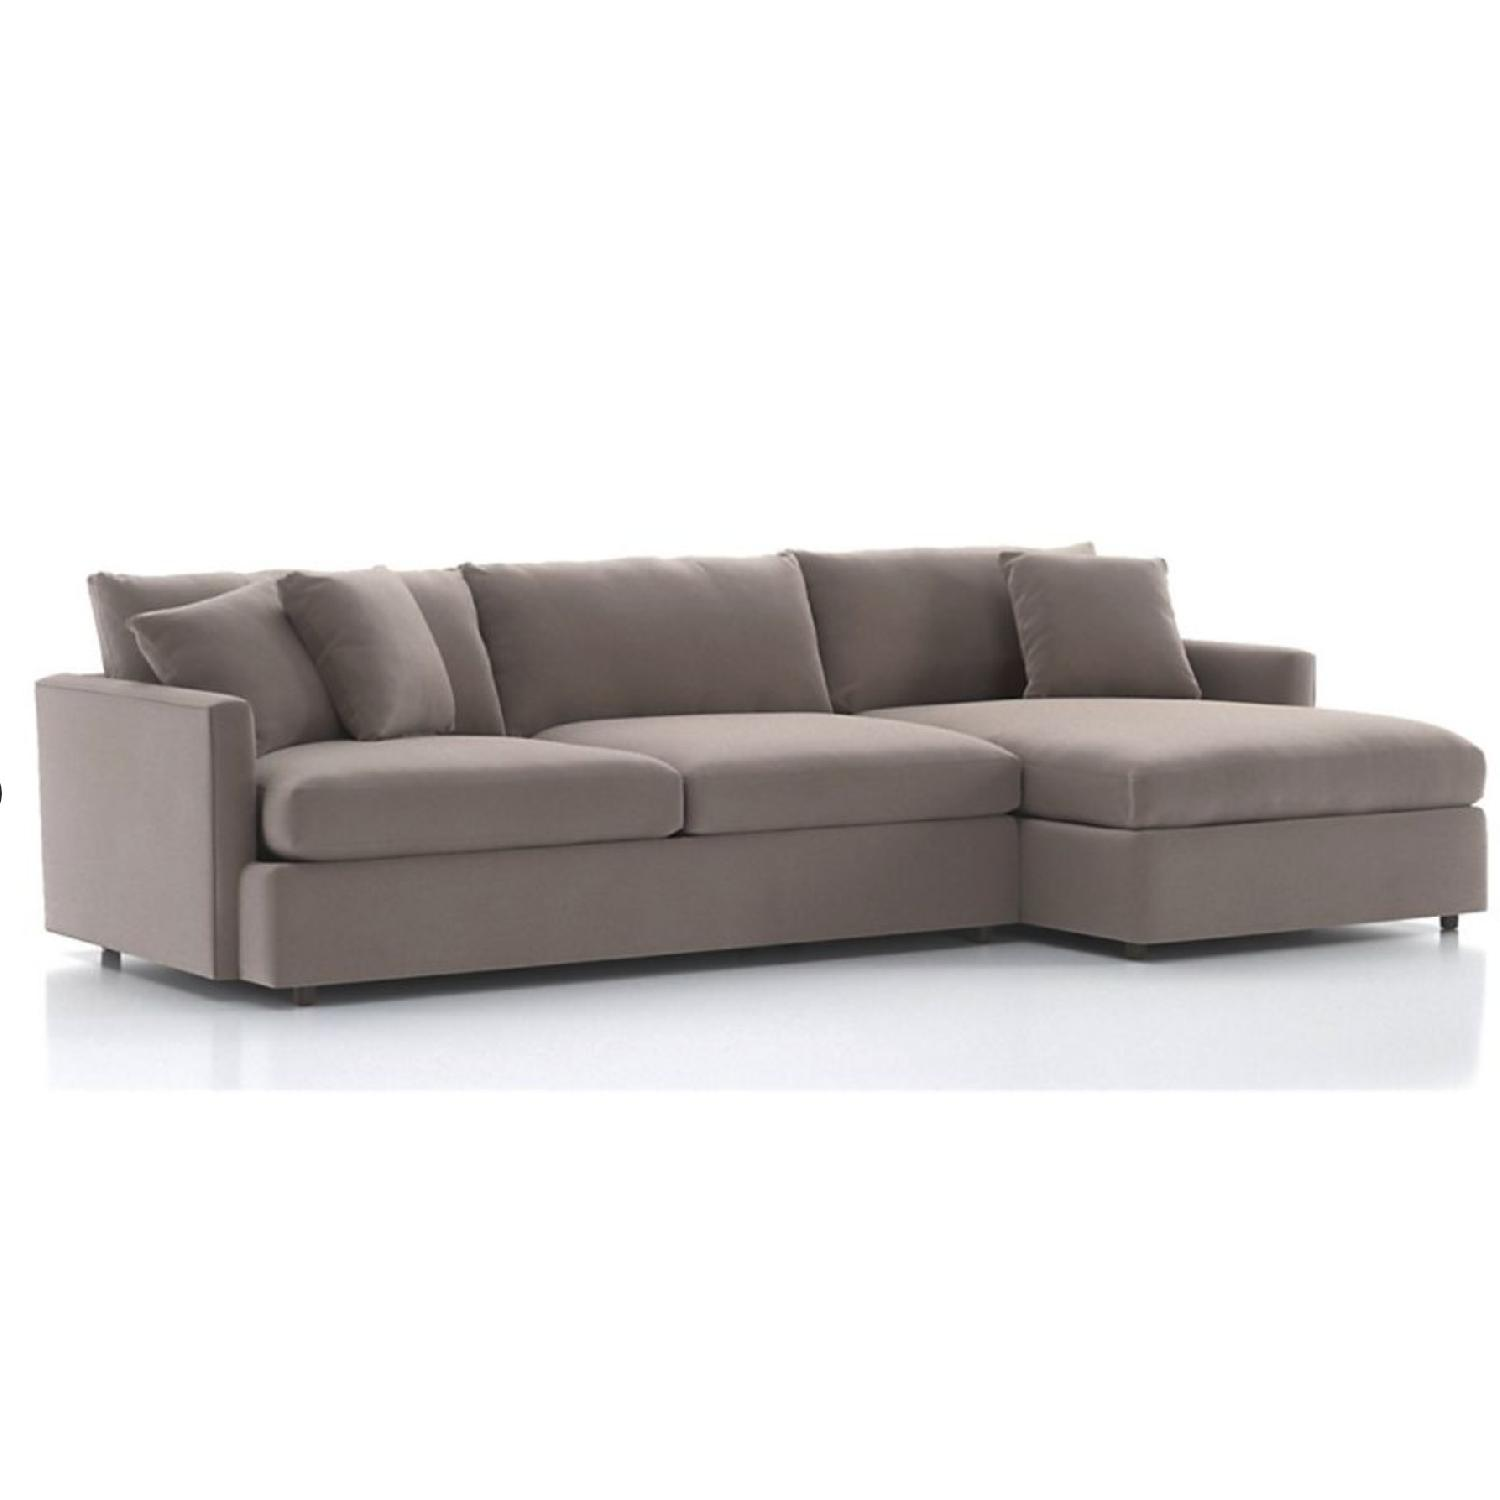 crate and barrel lounge sofa pilling crazy ride ellyson in gray aptdeco ii 2 piece sectional